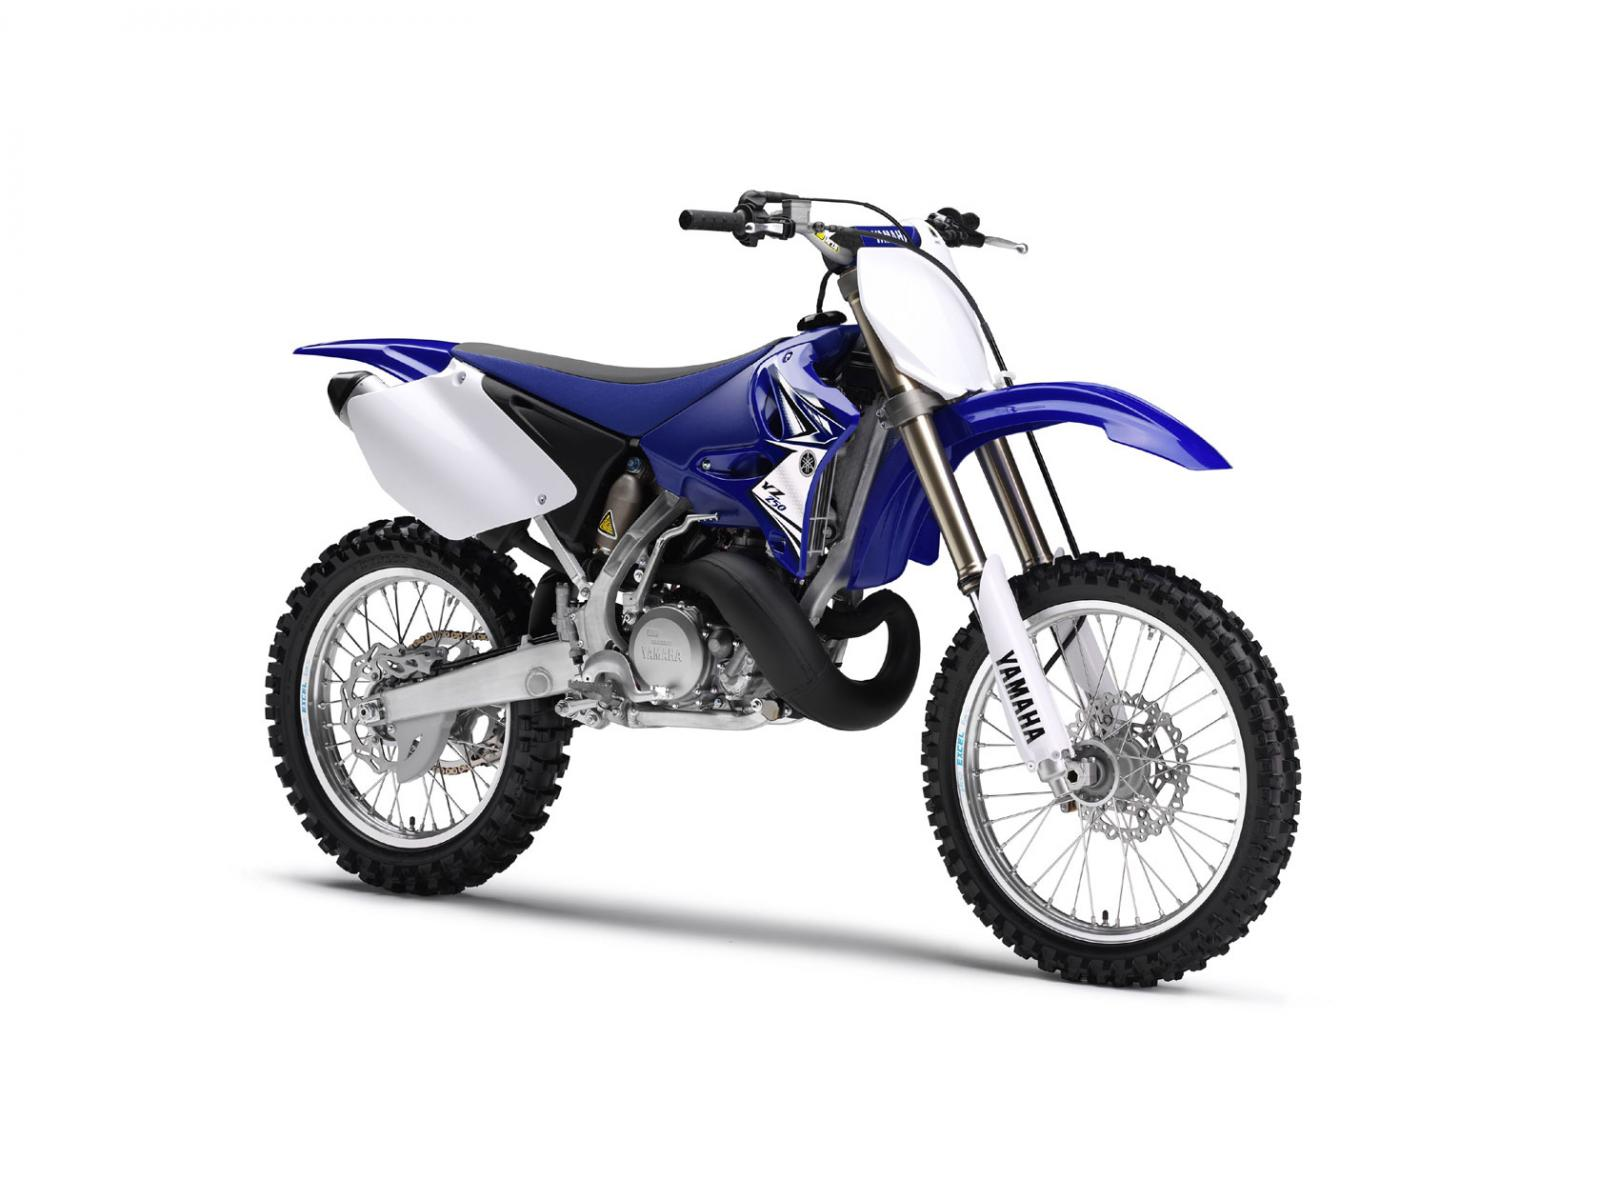 2010 yamaha yz 250 moto zombdrive com. Black Bedroom Furniture Sets. Home Design Ideas